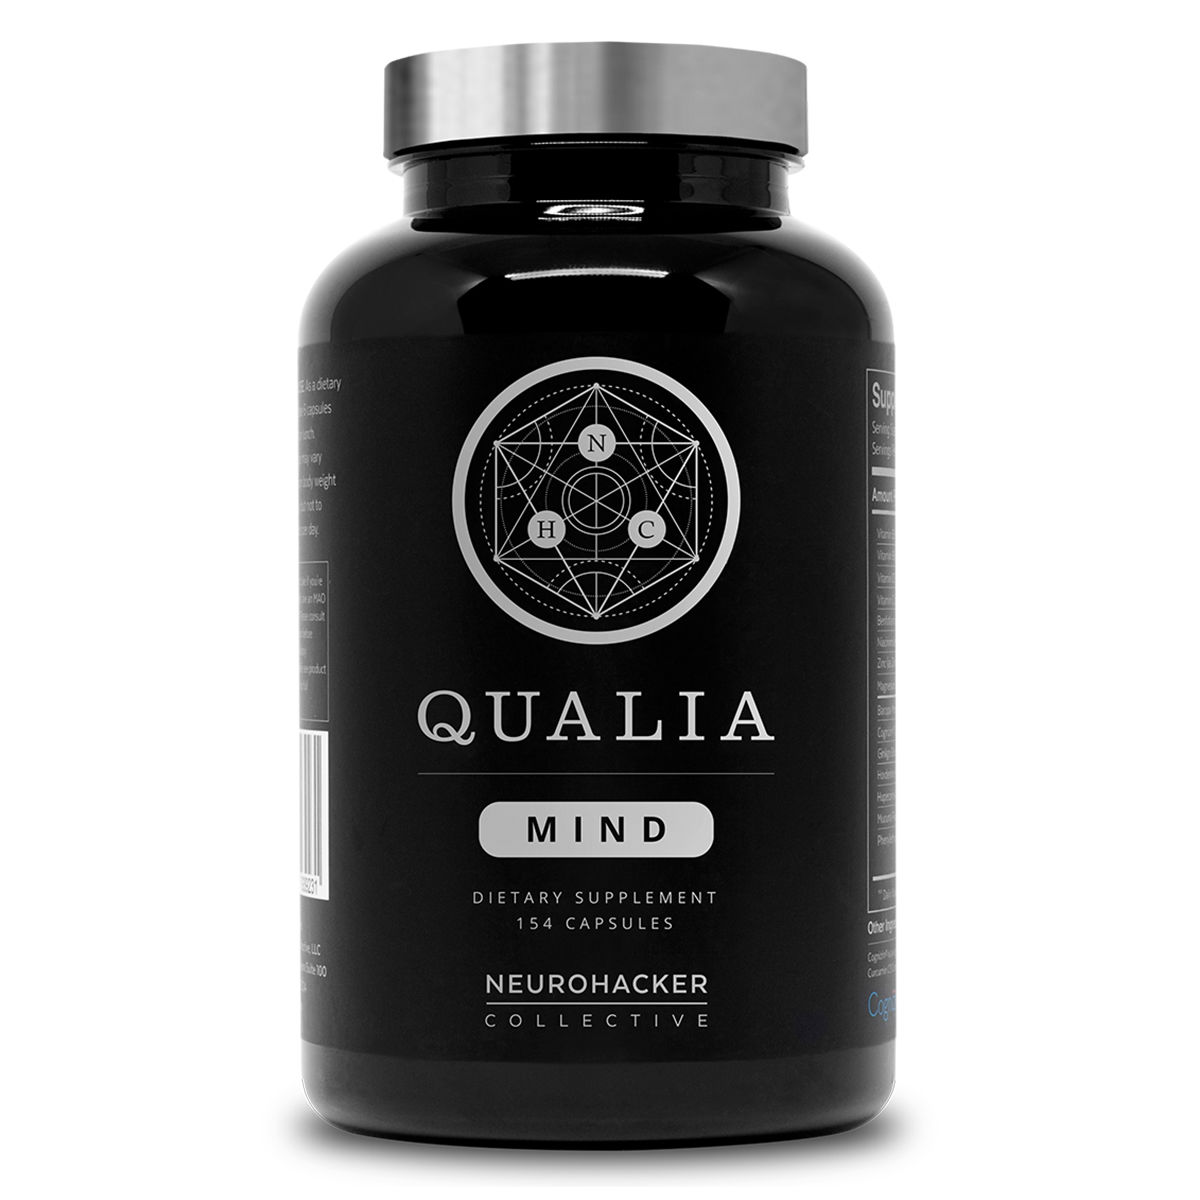 Shop Qualia Mind Neurohacker Collective